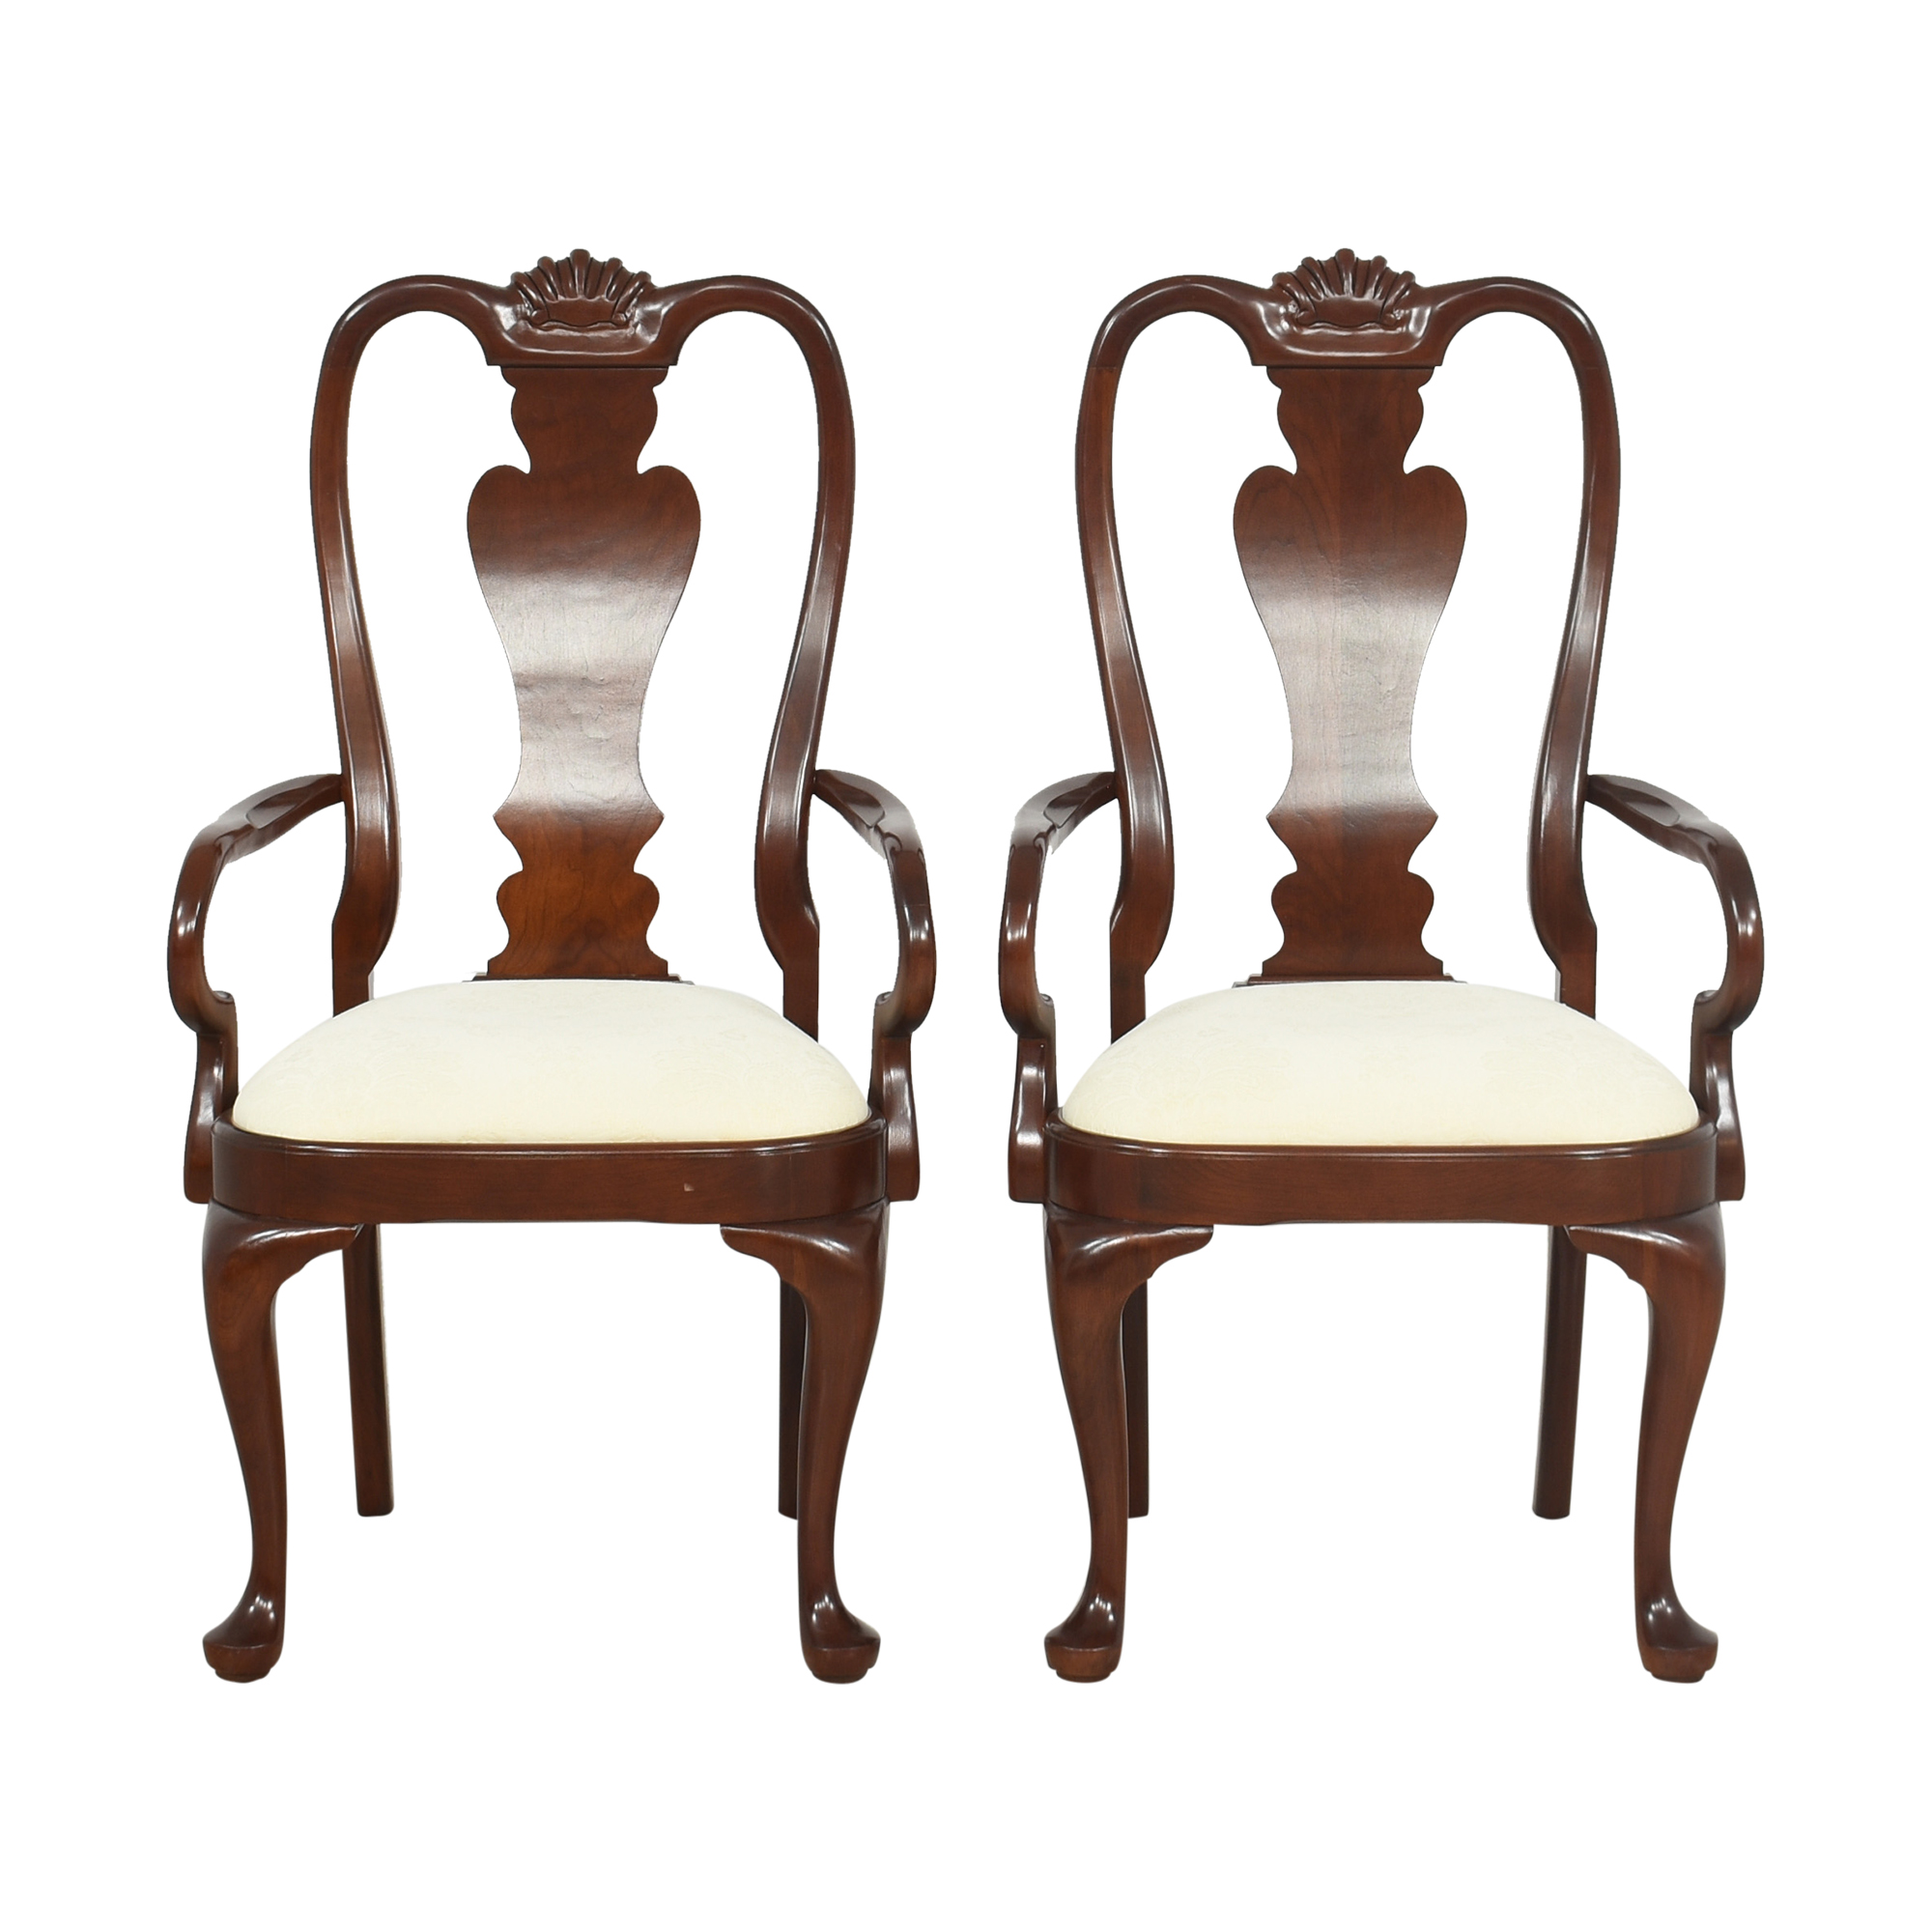 The Colonial Furniture Company Ashley Queen Anne Dining Arm Chairs / Chairs